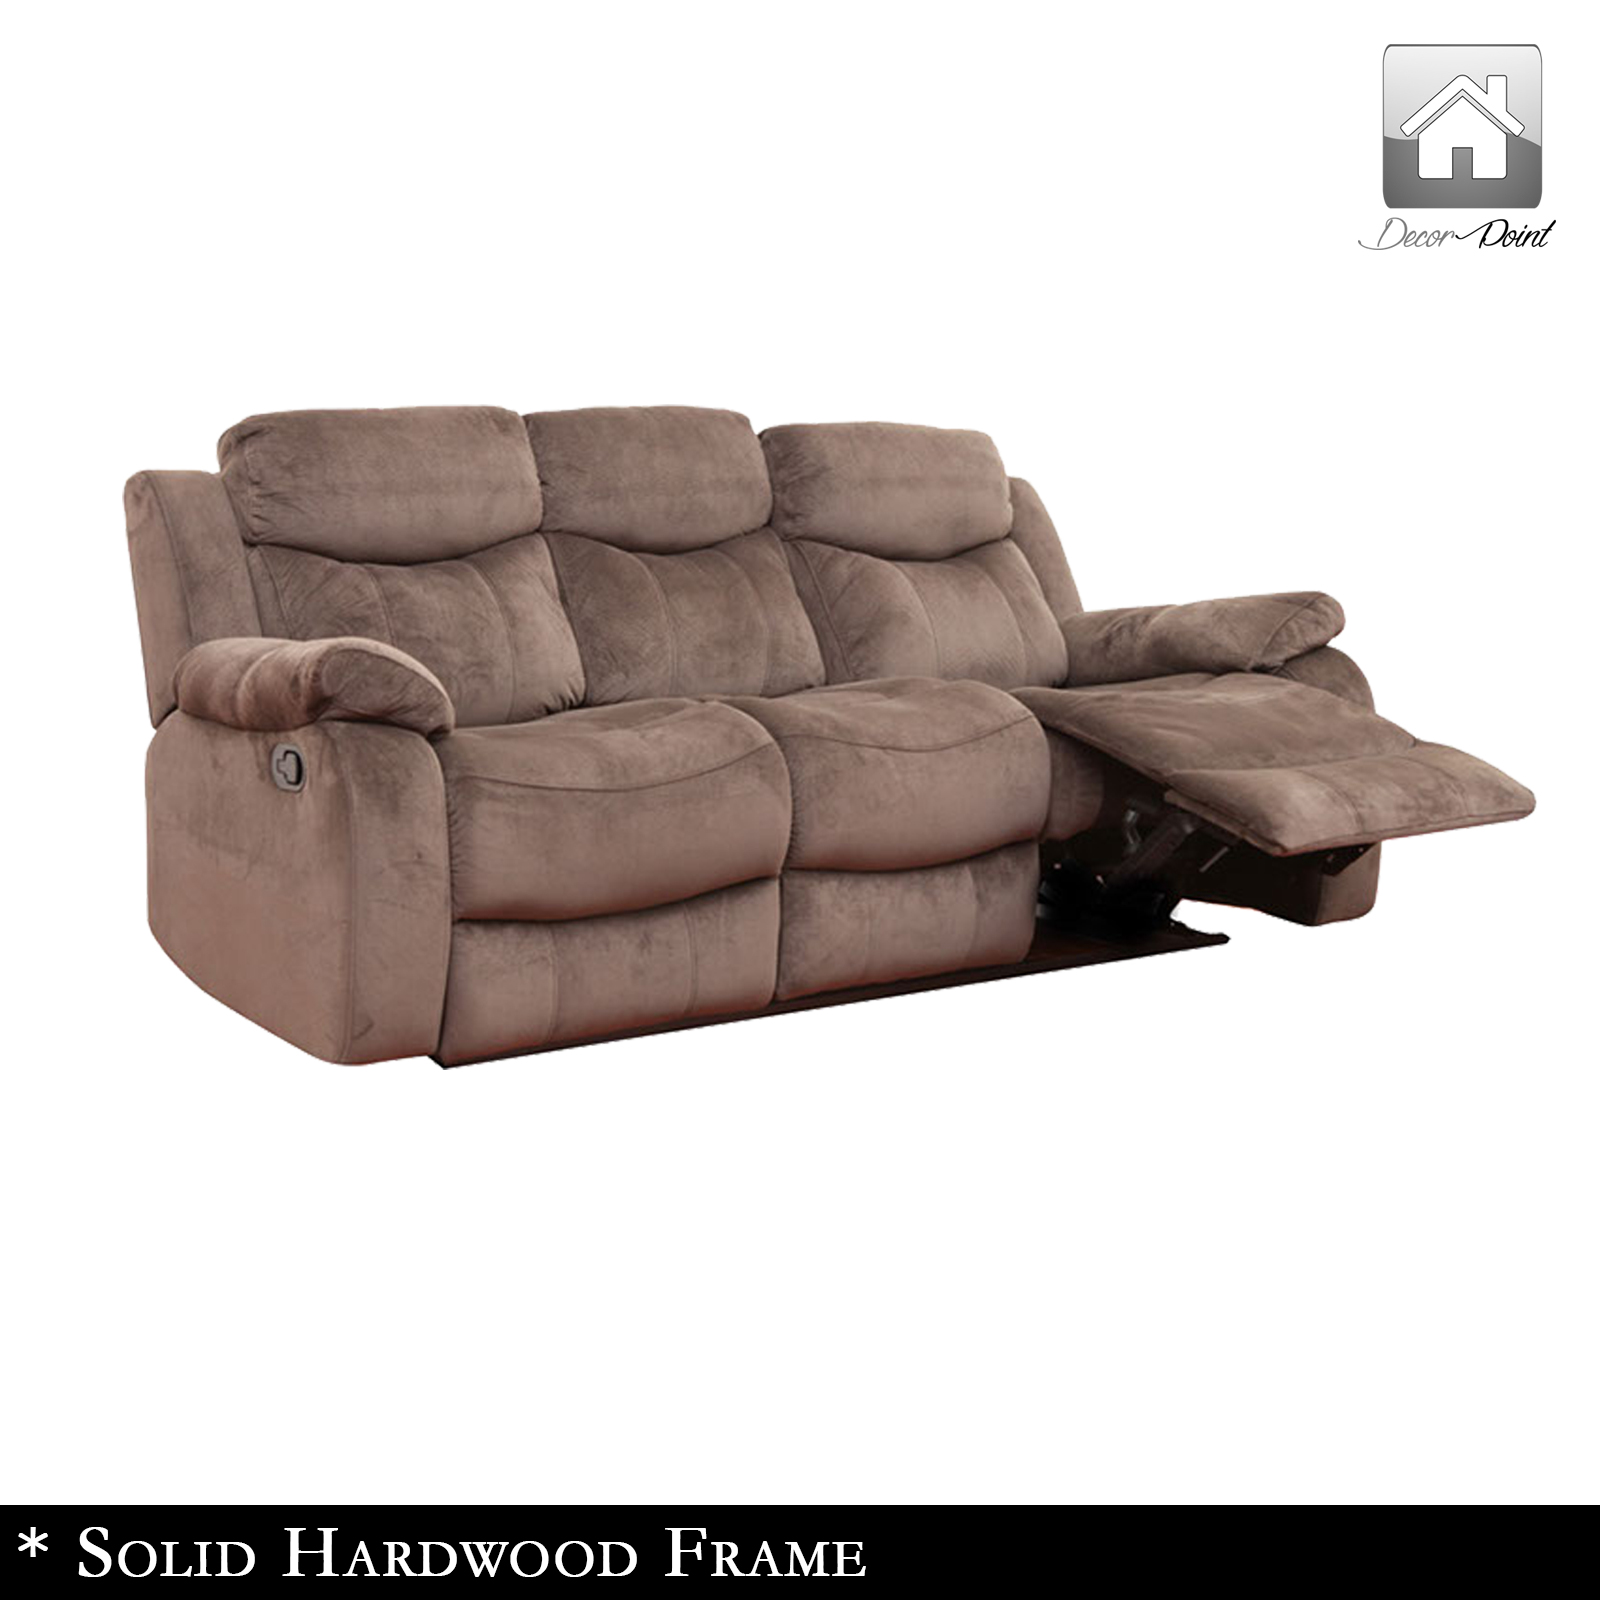 New Luxury Poland Suede Leather 3 Seater Recliners Sofa Truffle